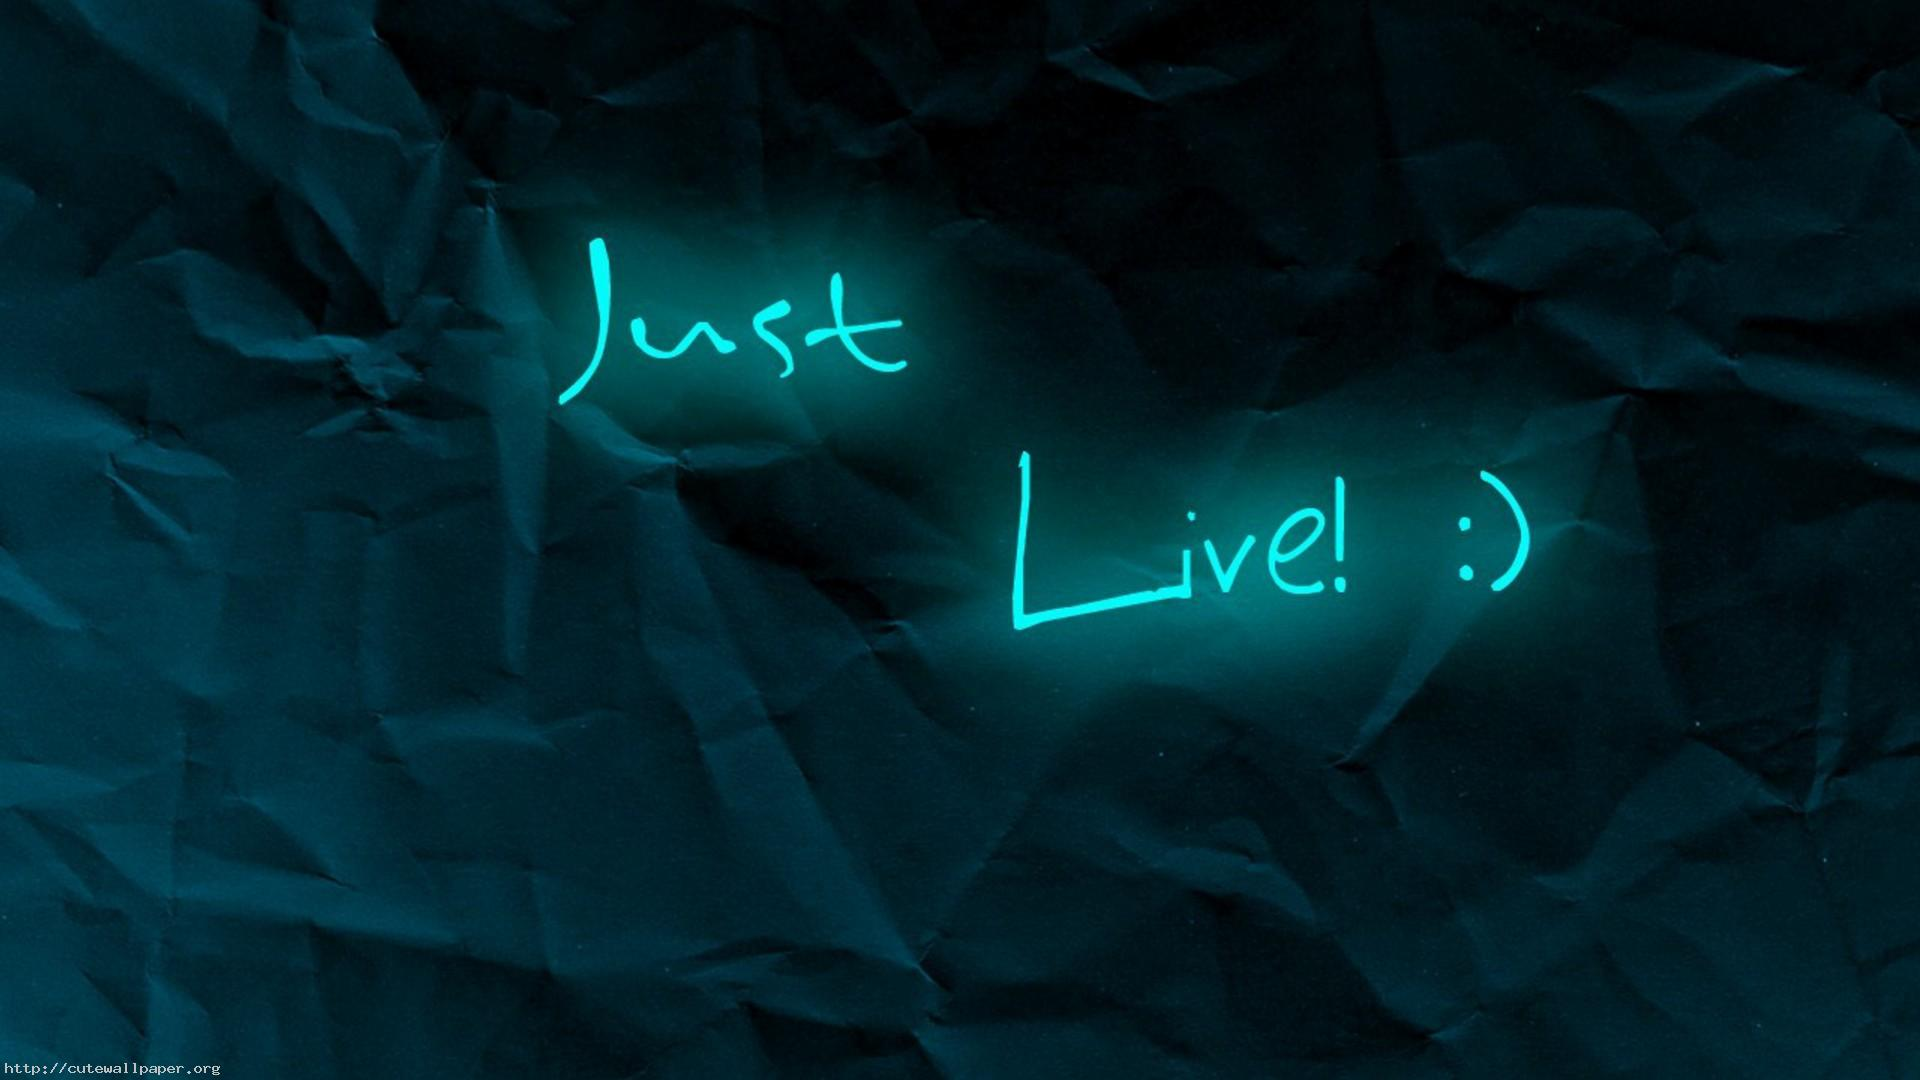 alive wallpaper HD 1920x1080